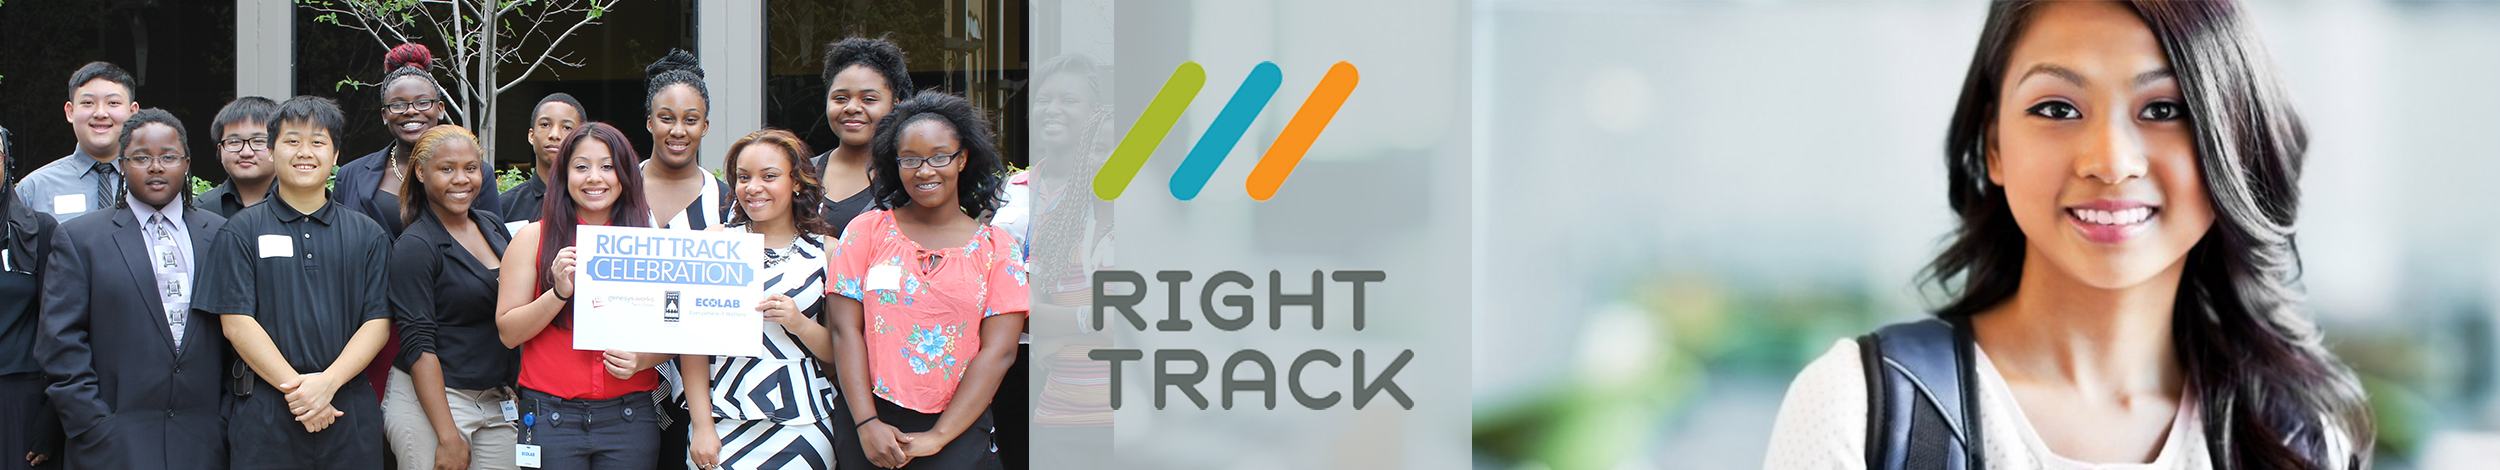 right track banner